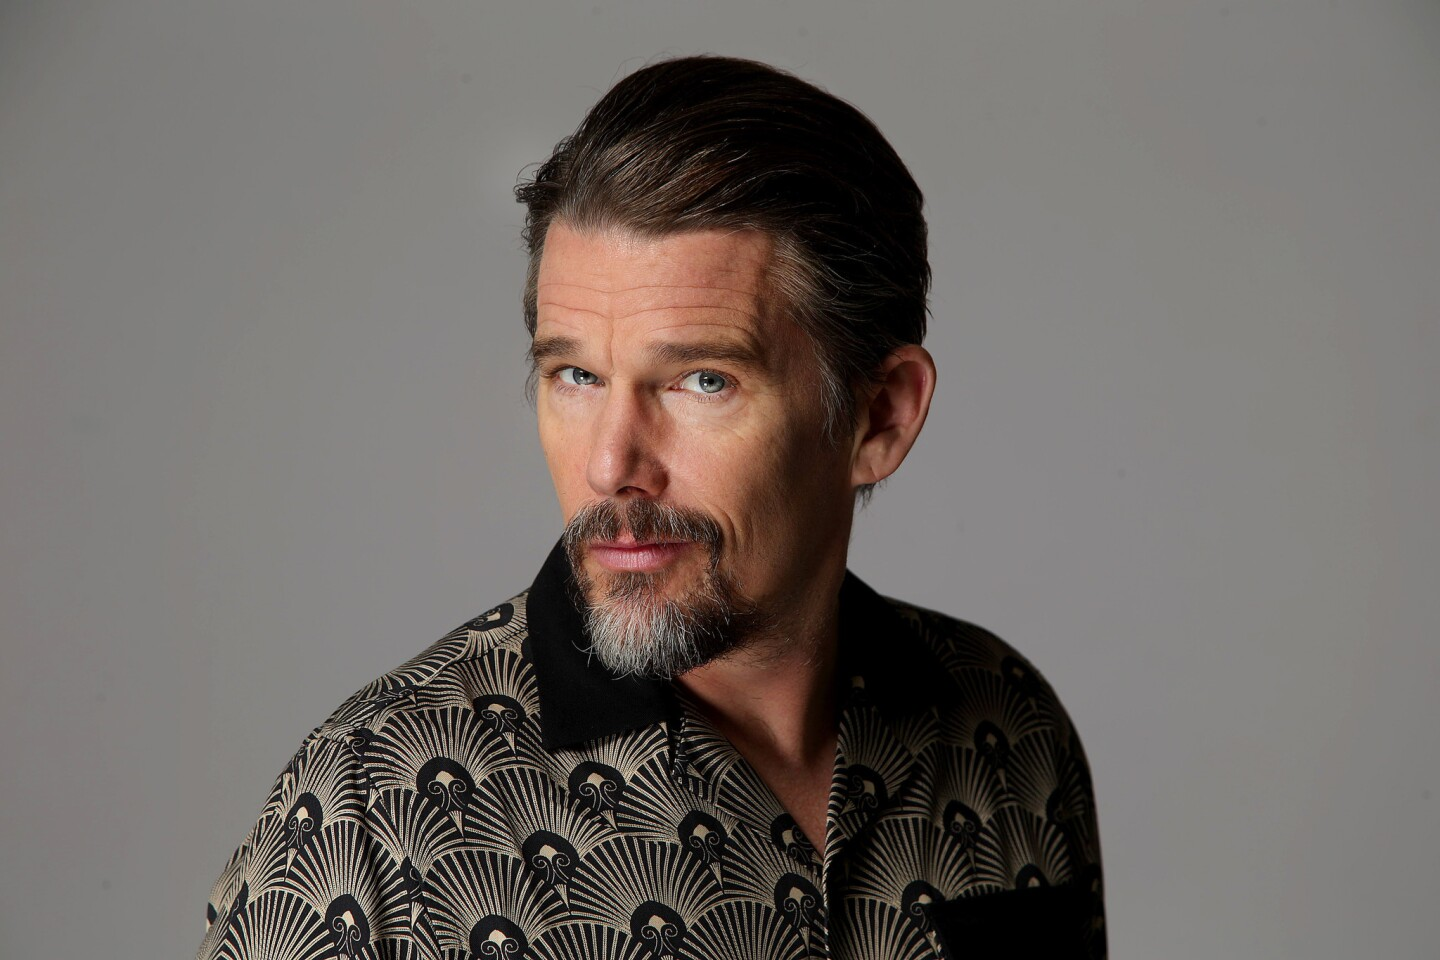 """Ethan Hawke -- actor in """"First Reformed"""" and """"Juliet, Naked"""" and director of """"Blaze"""" -- attends the Envelope gathering of lead actors for a frank discussion on the industry and their movies."""